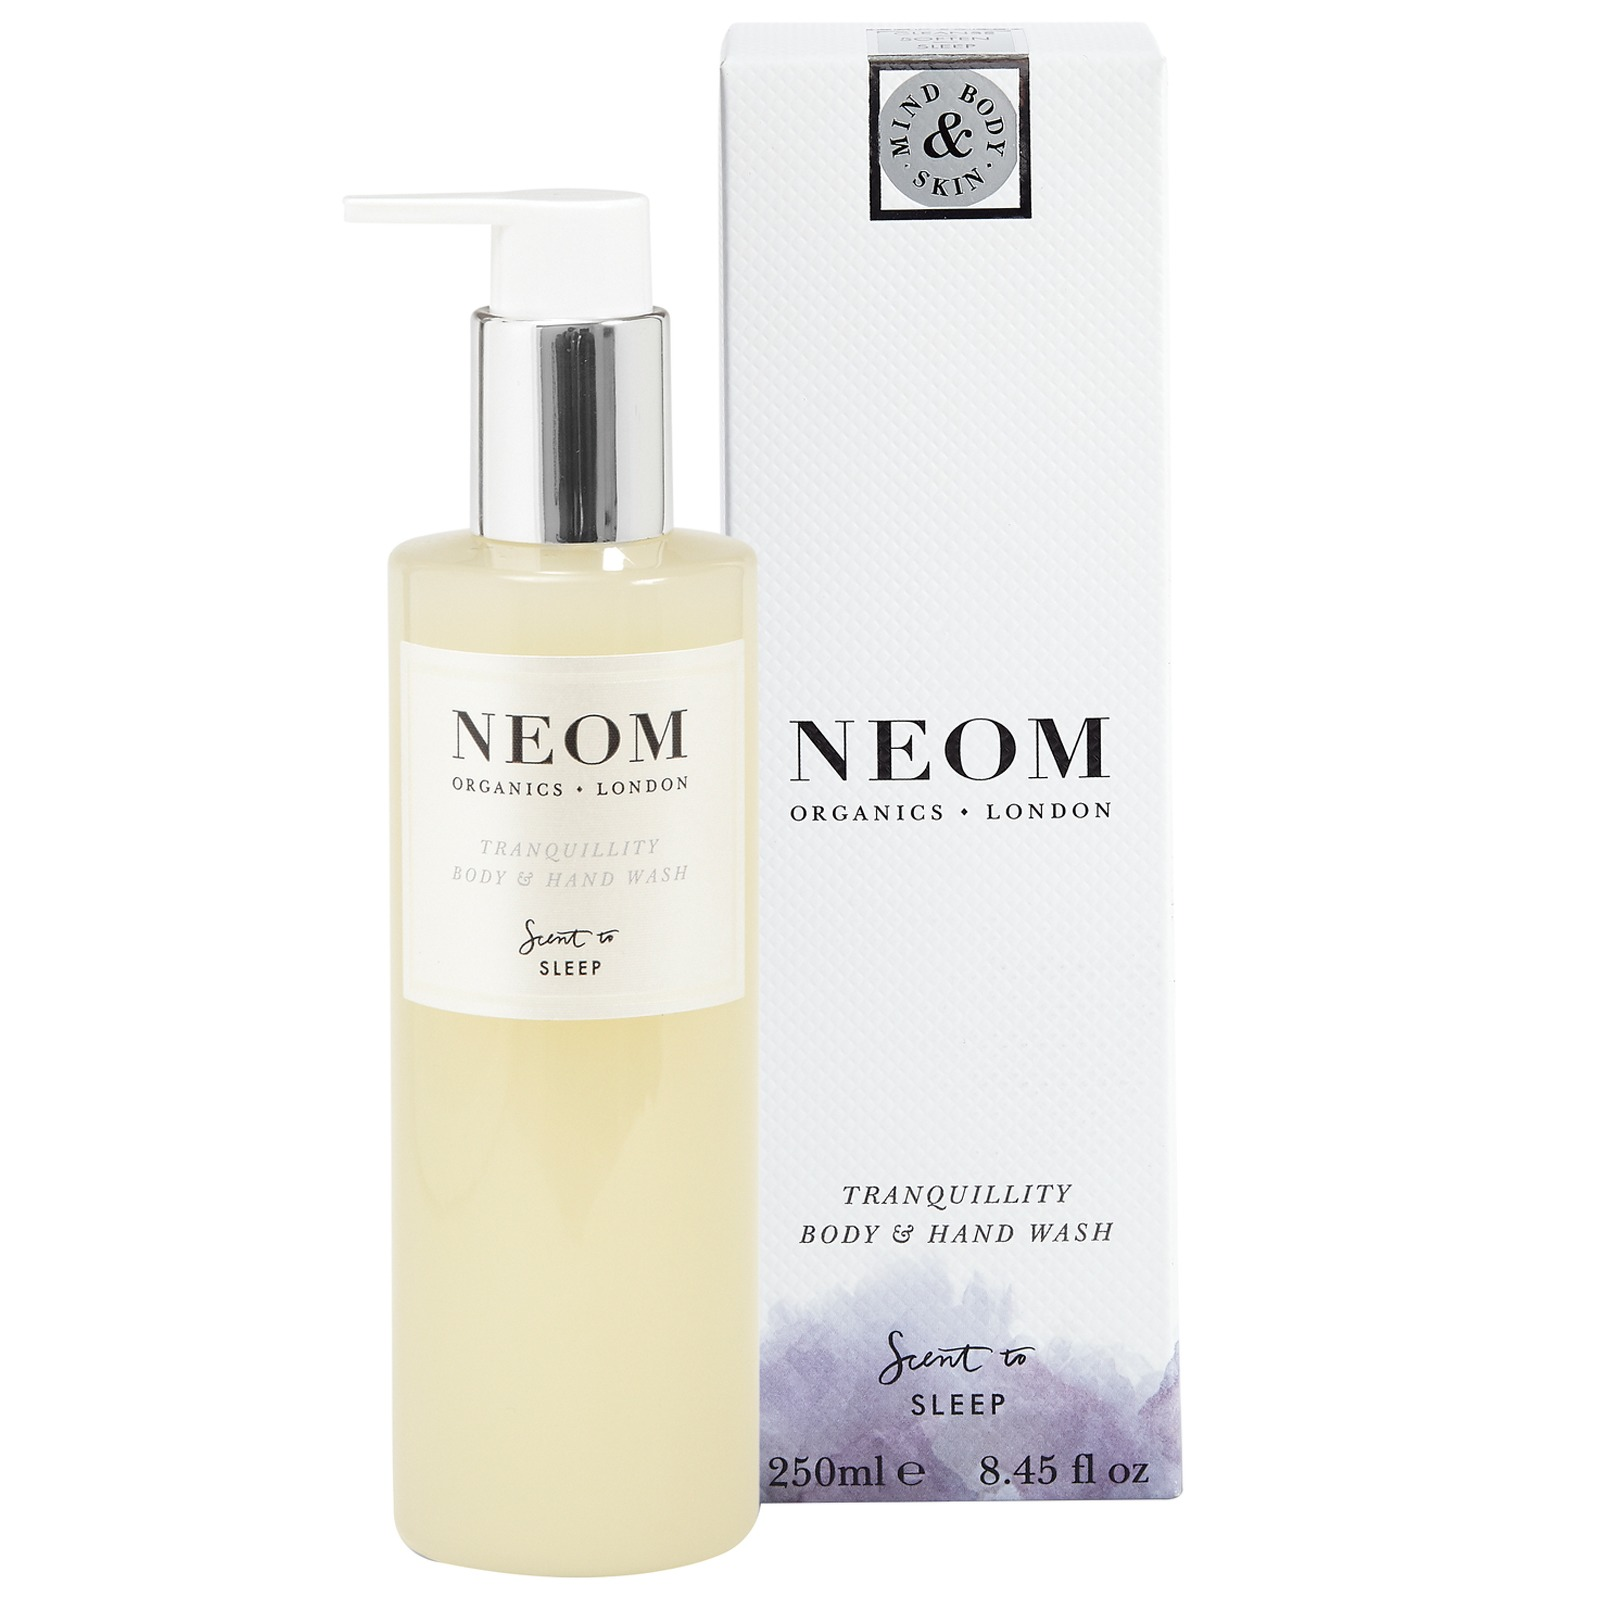 Neom Organics London Scent To Sleep Tranquillity Body and Hand Wash 250ml